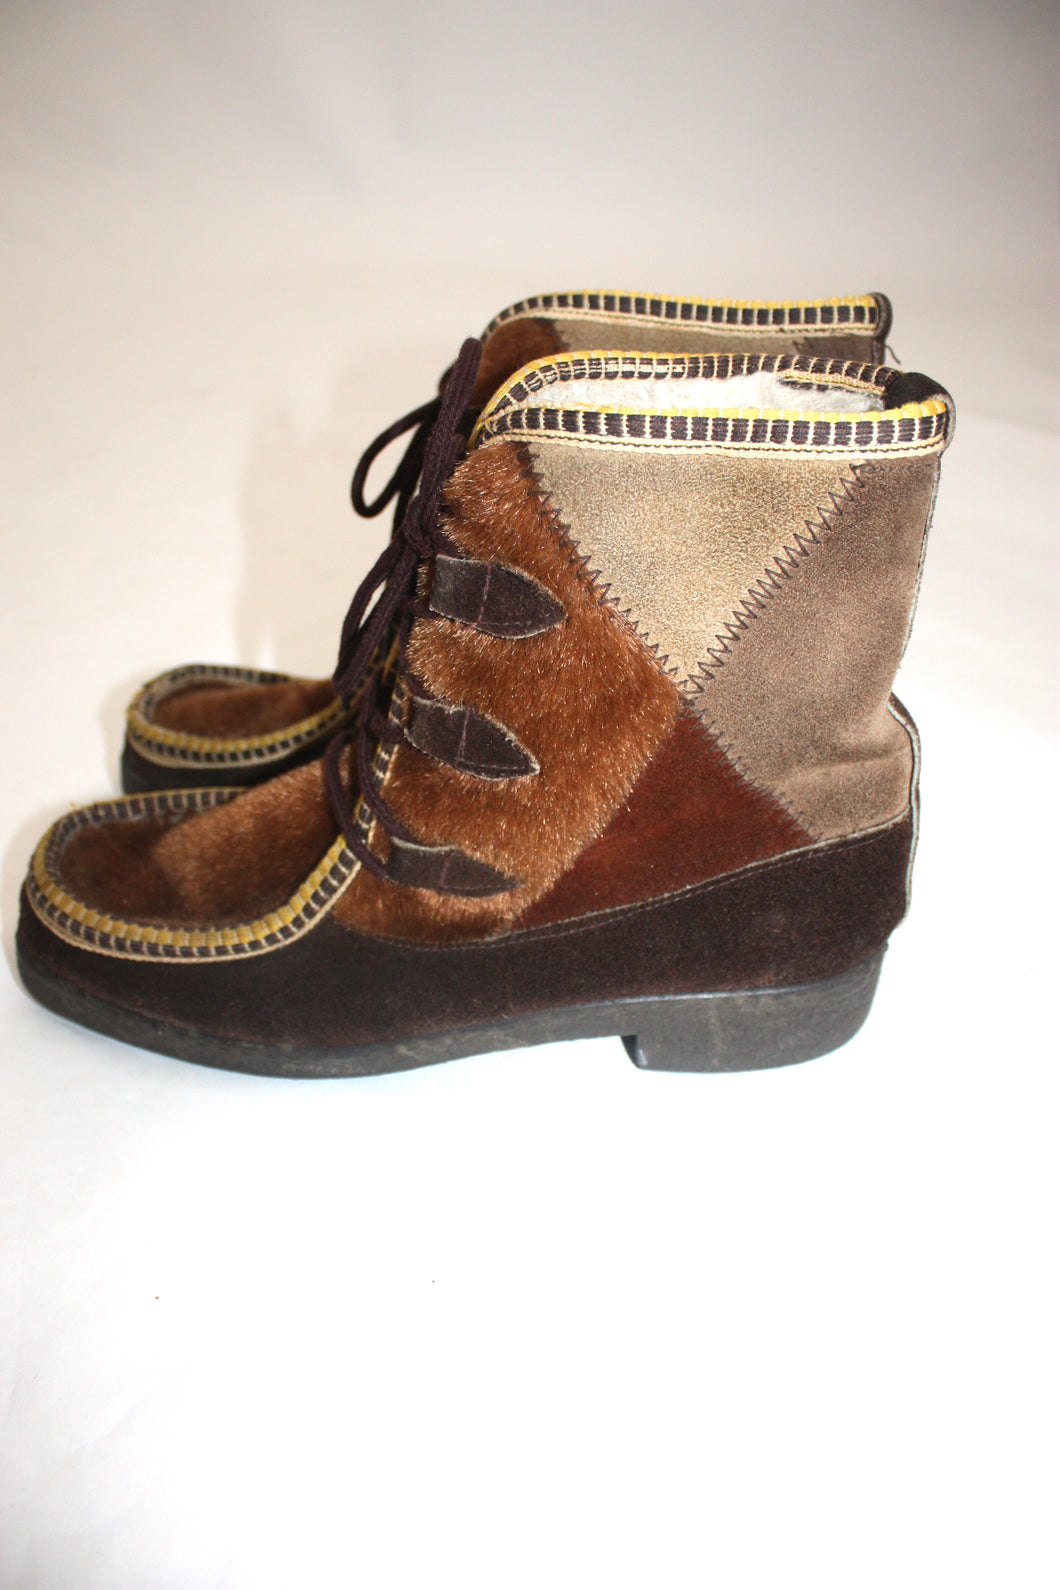 1970s Italian fur/suede patchwork snow boots